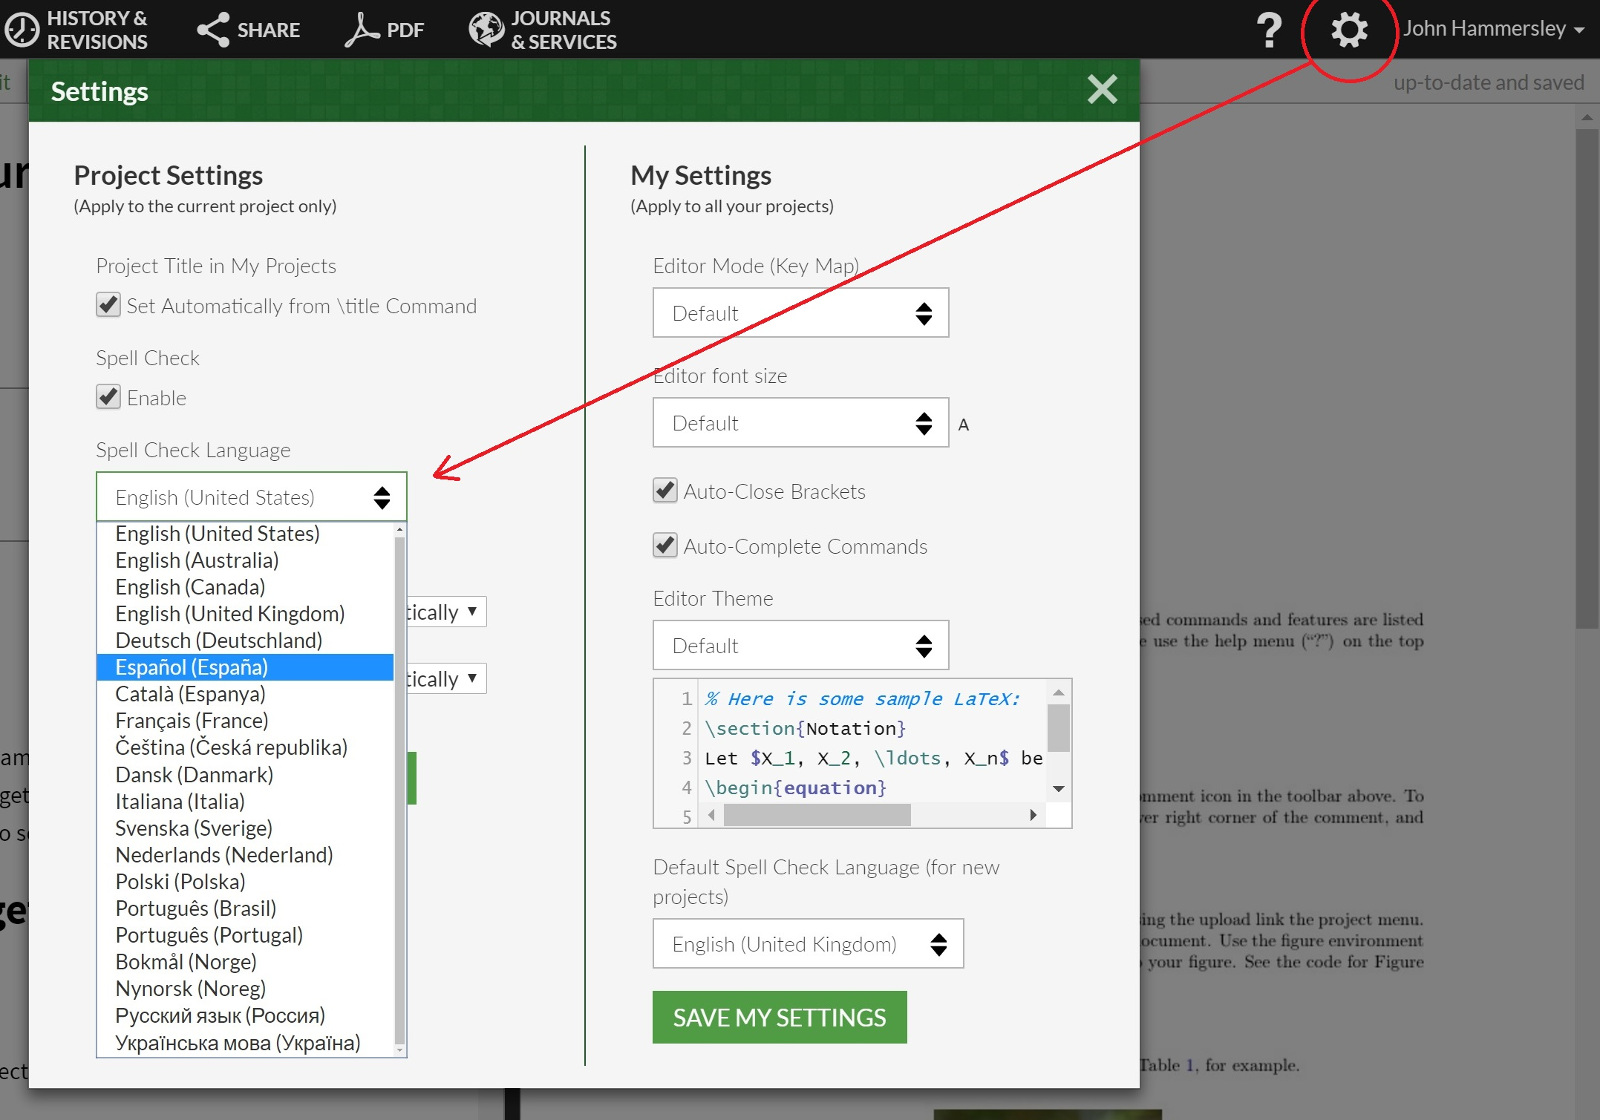 Overleaf spell check language option open in project setting